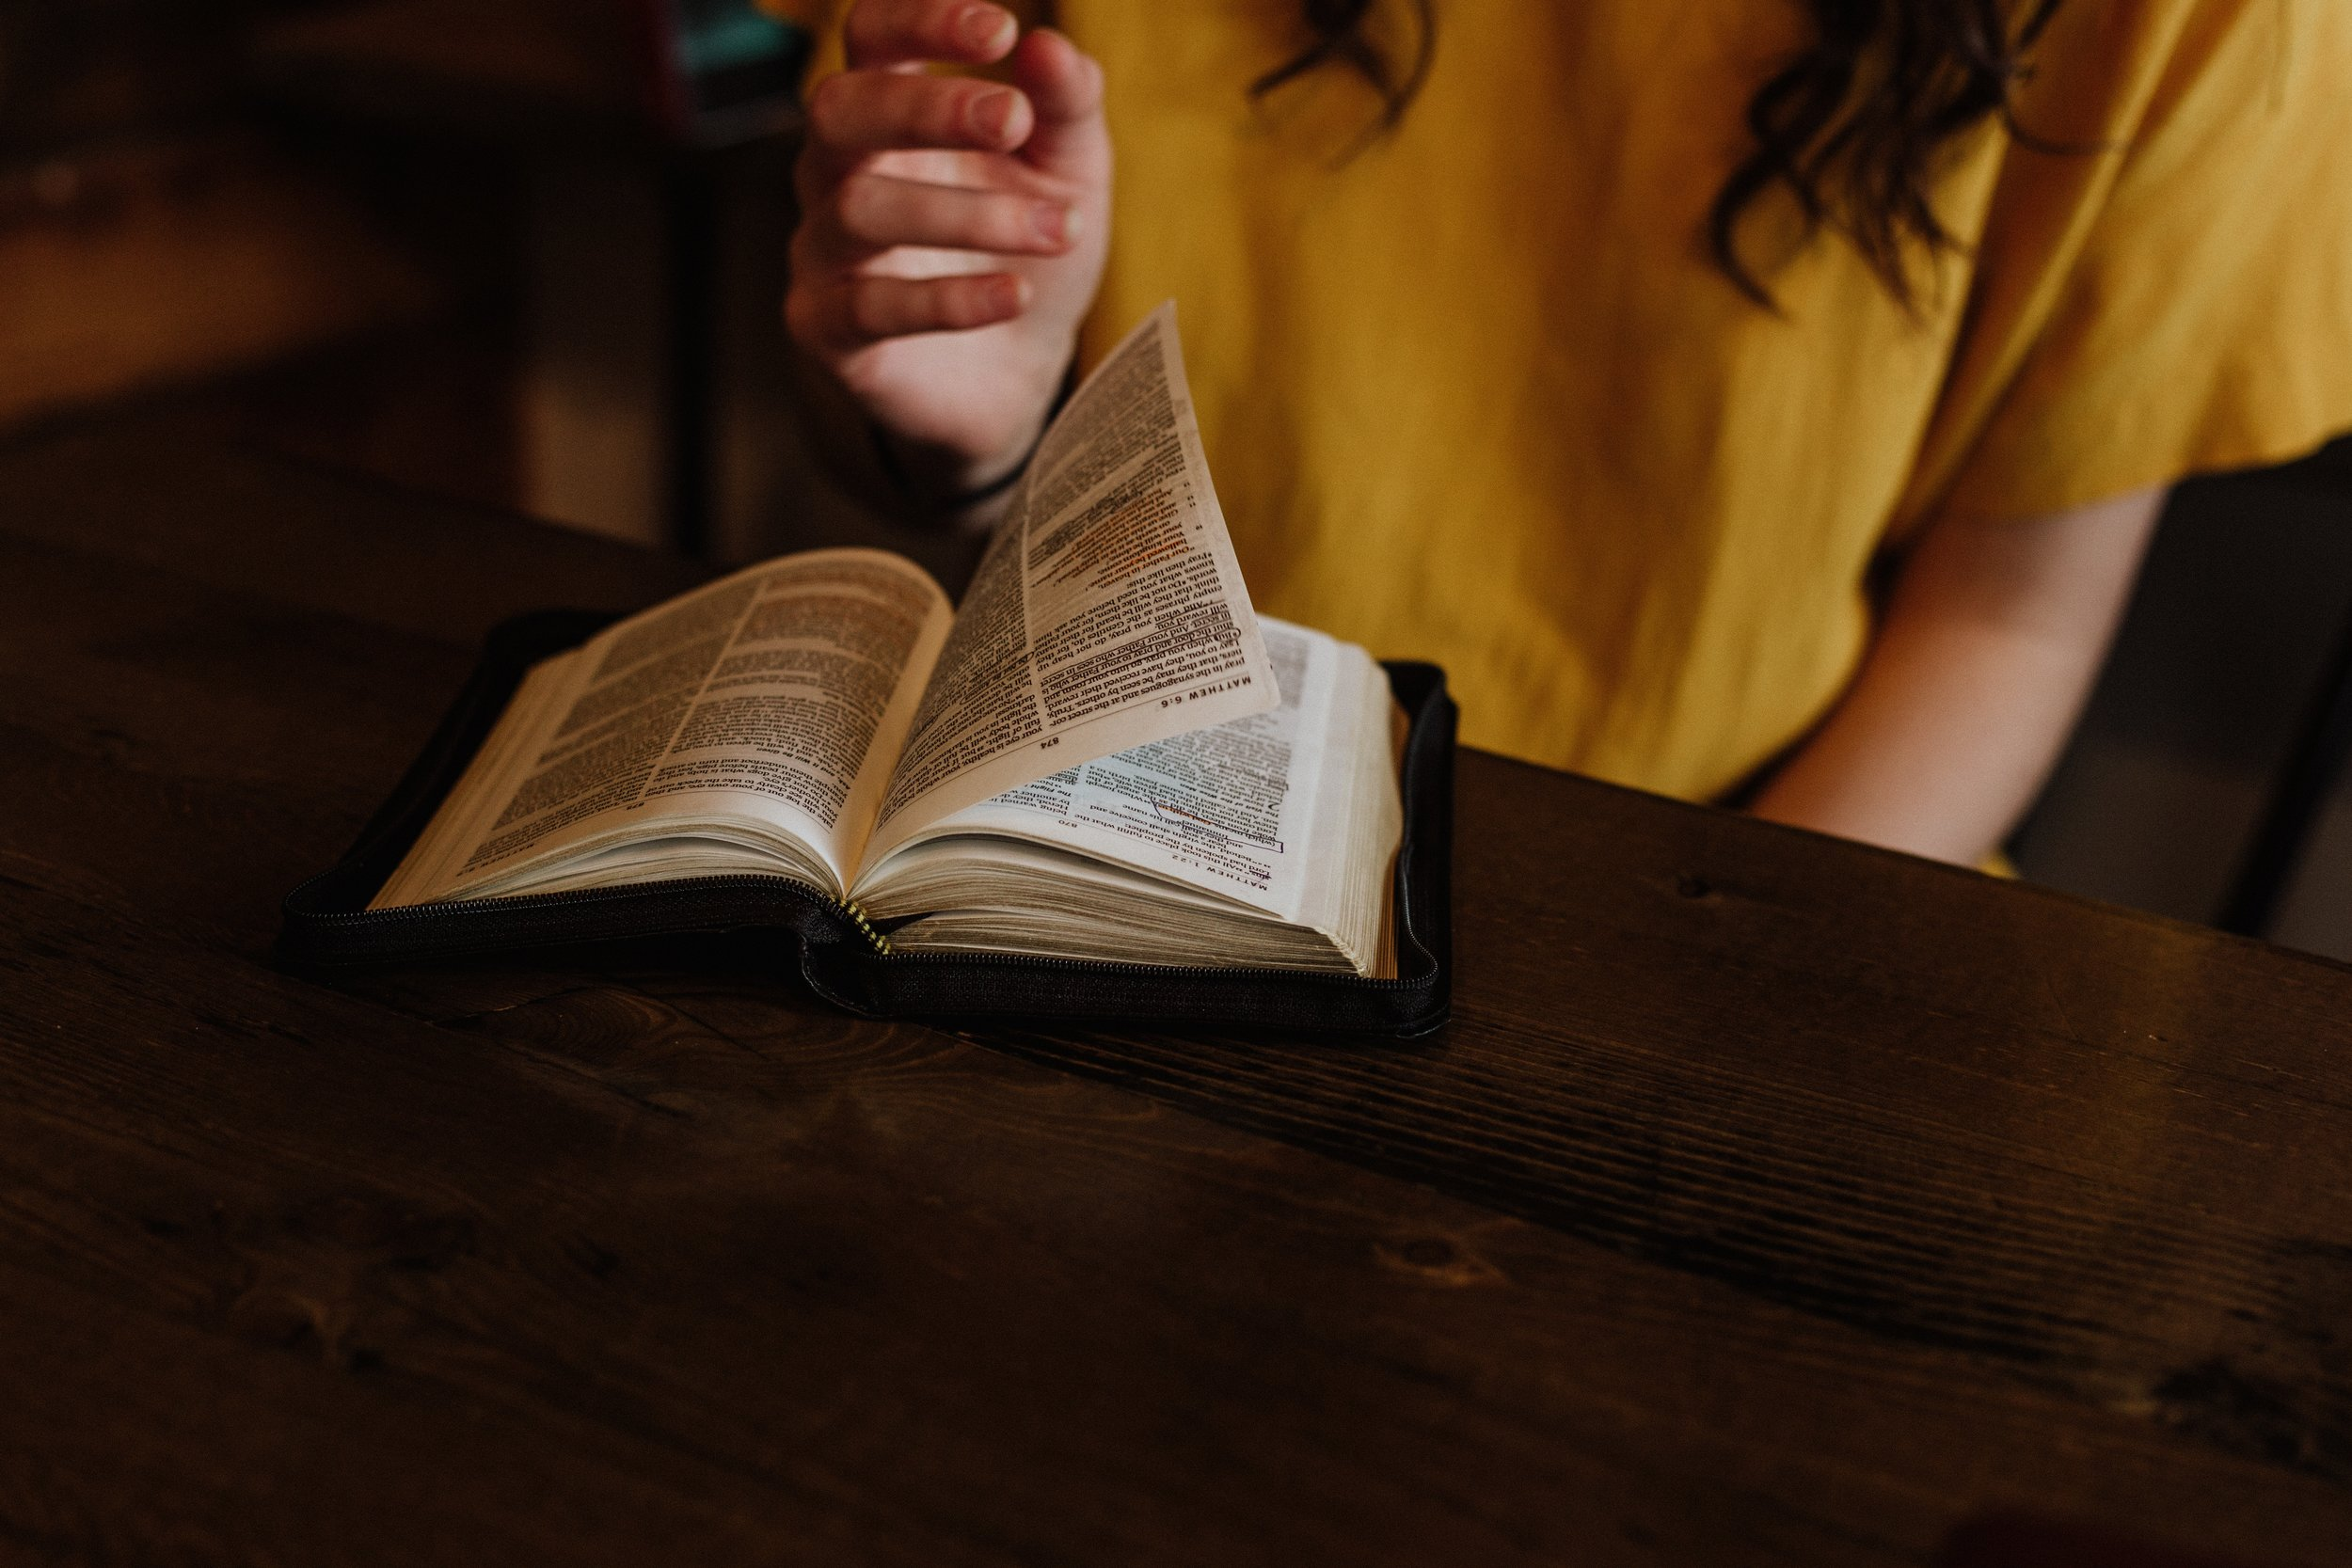 FAITH STUDIES - Groups that gather to discuss the life of Jesus Christ, and what it means for their lives.